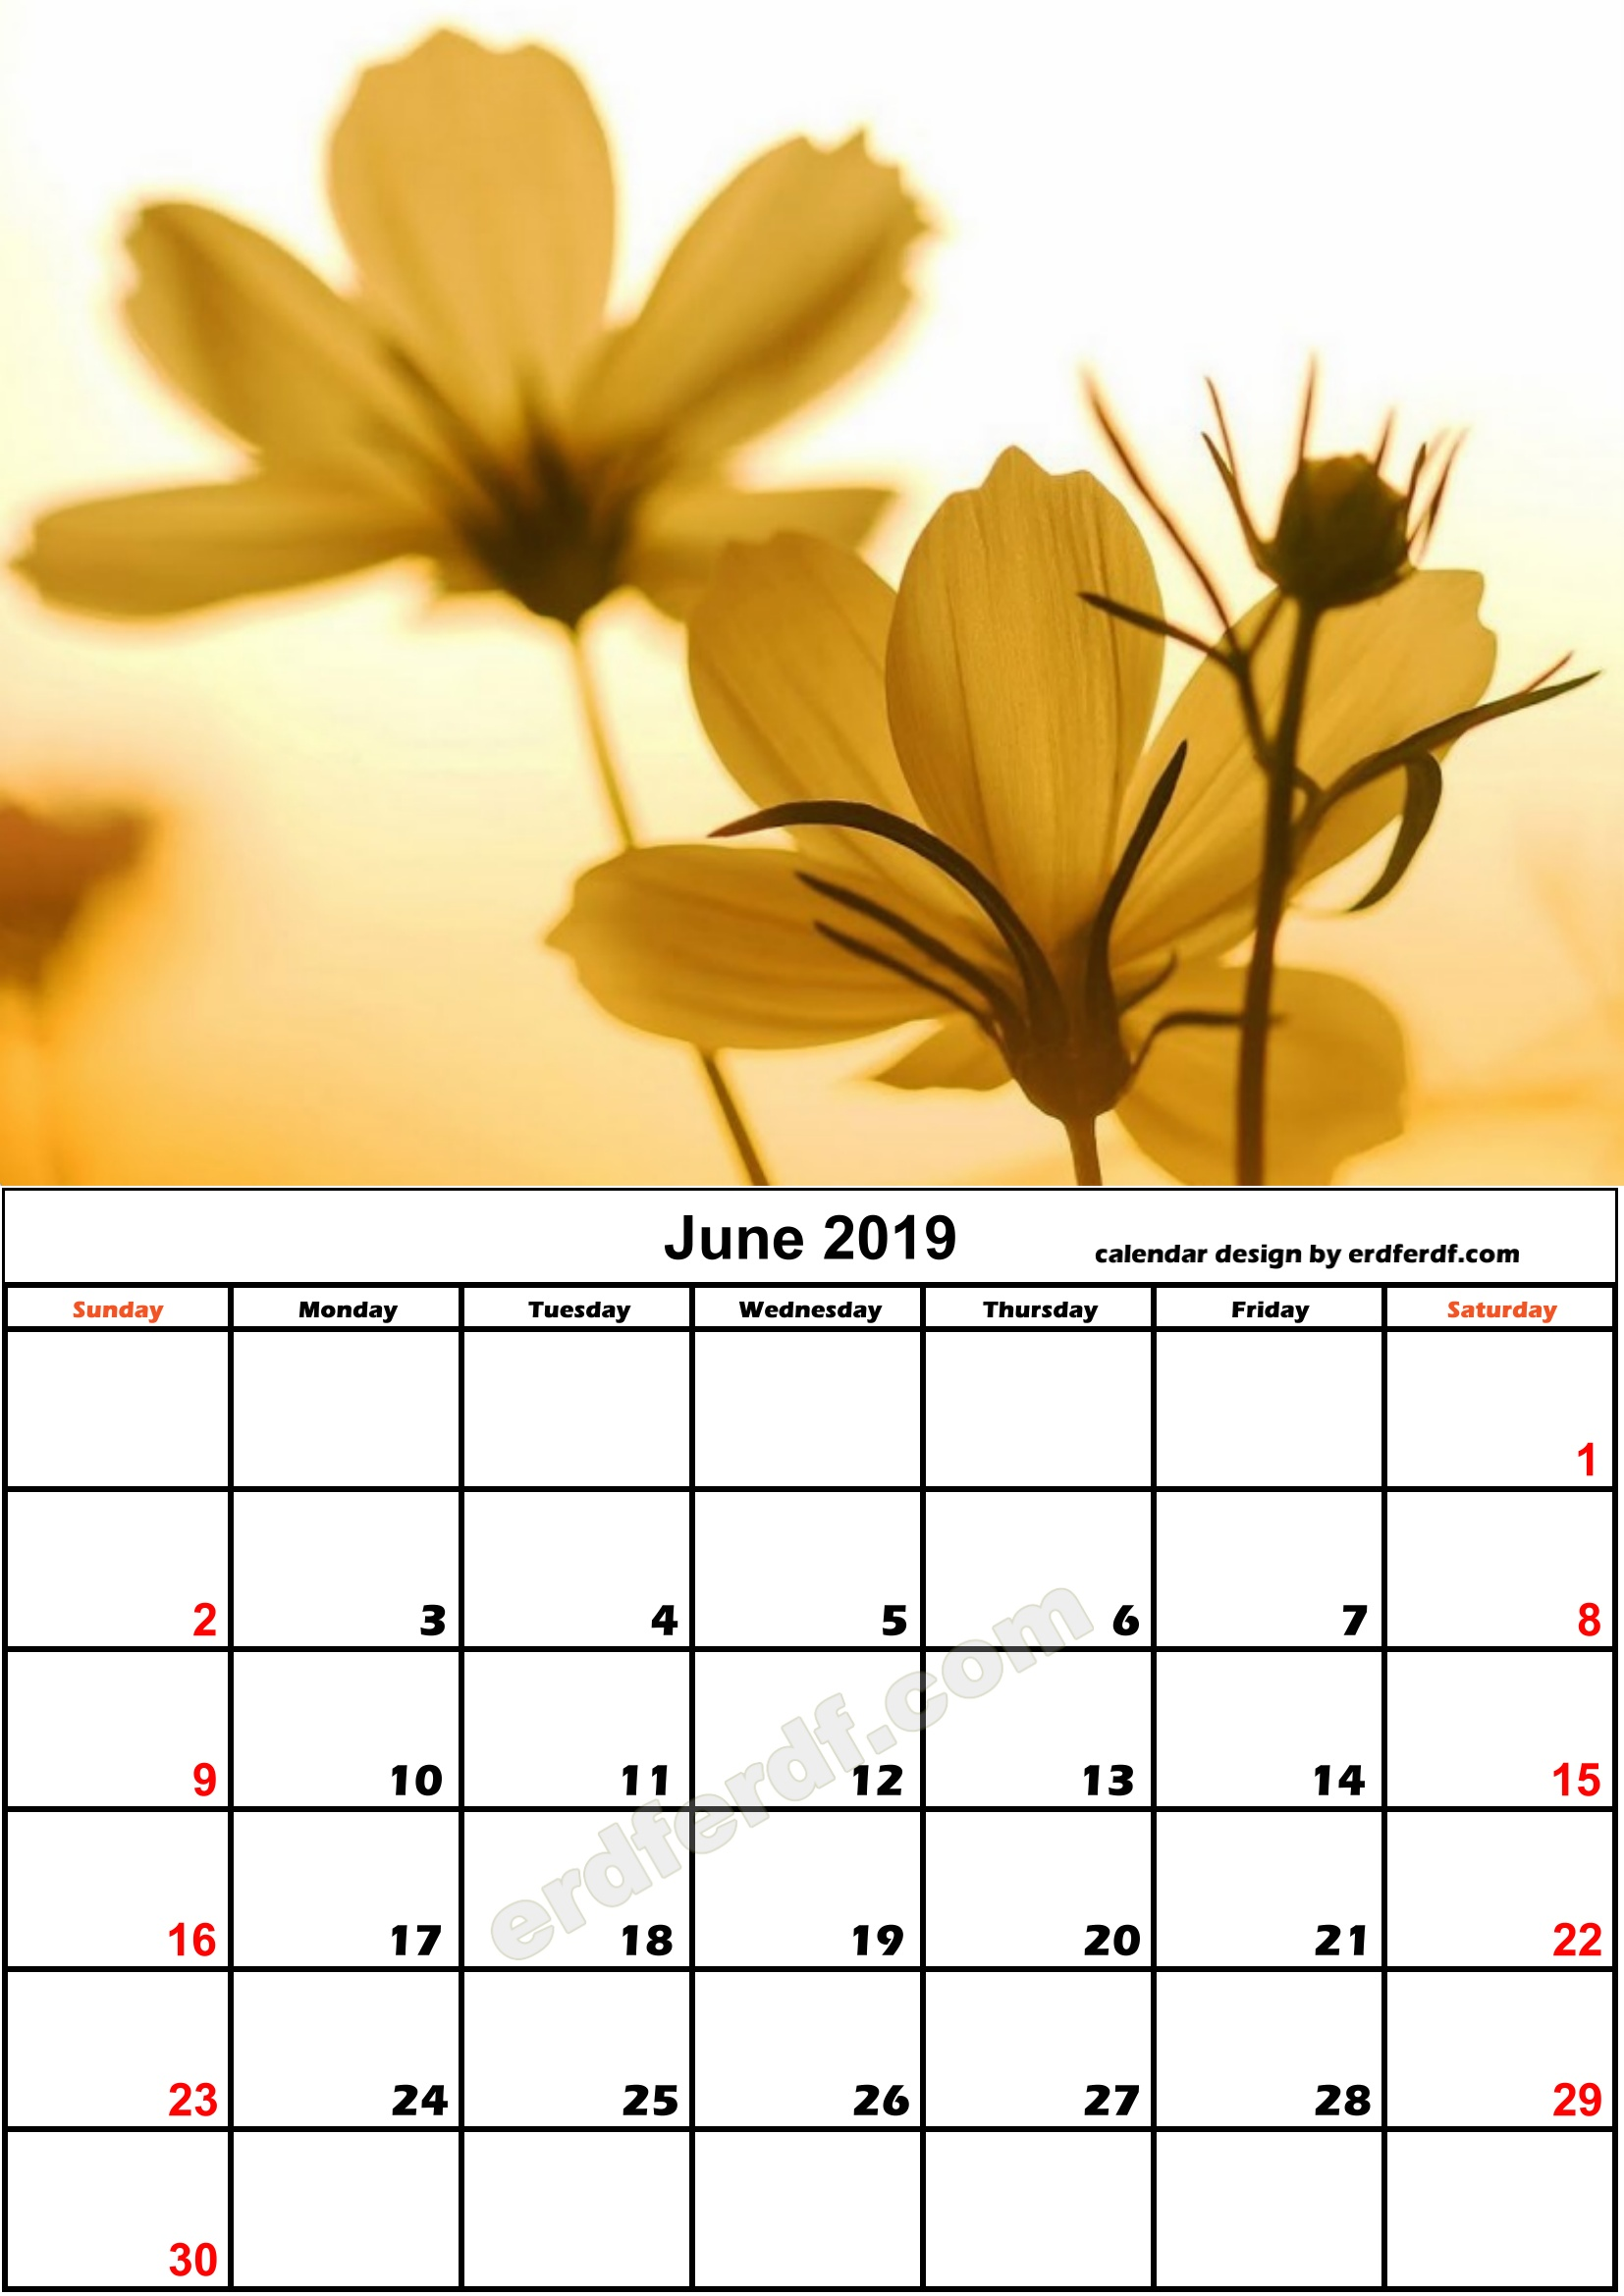 6 Yelow Flower June Nature Calendar Monthly 2019 Free Download